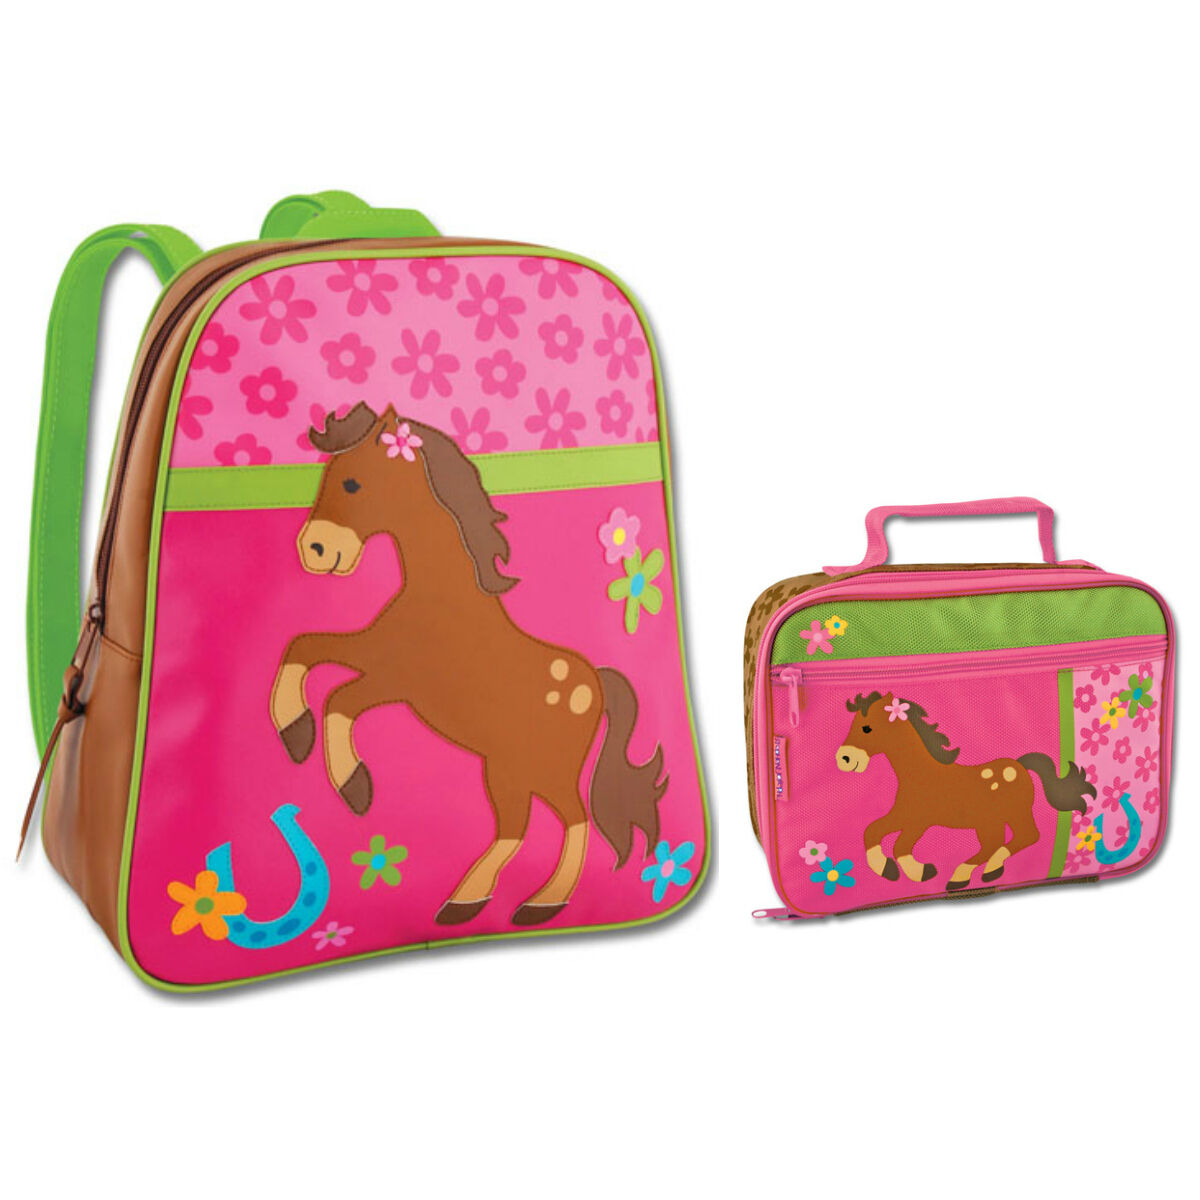 Stephen Joseph Girls Horse School Backpack and Lunch Box for